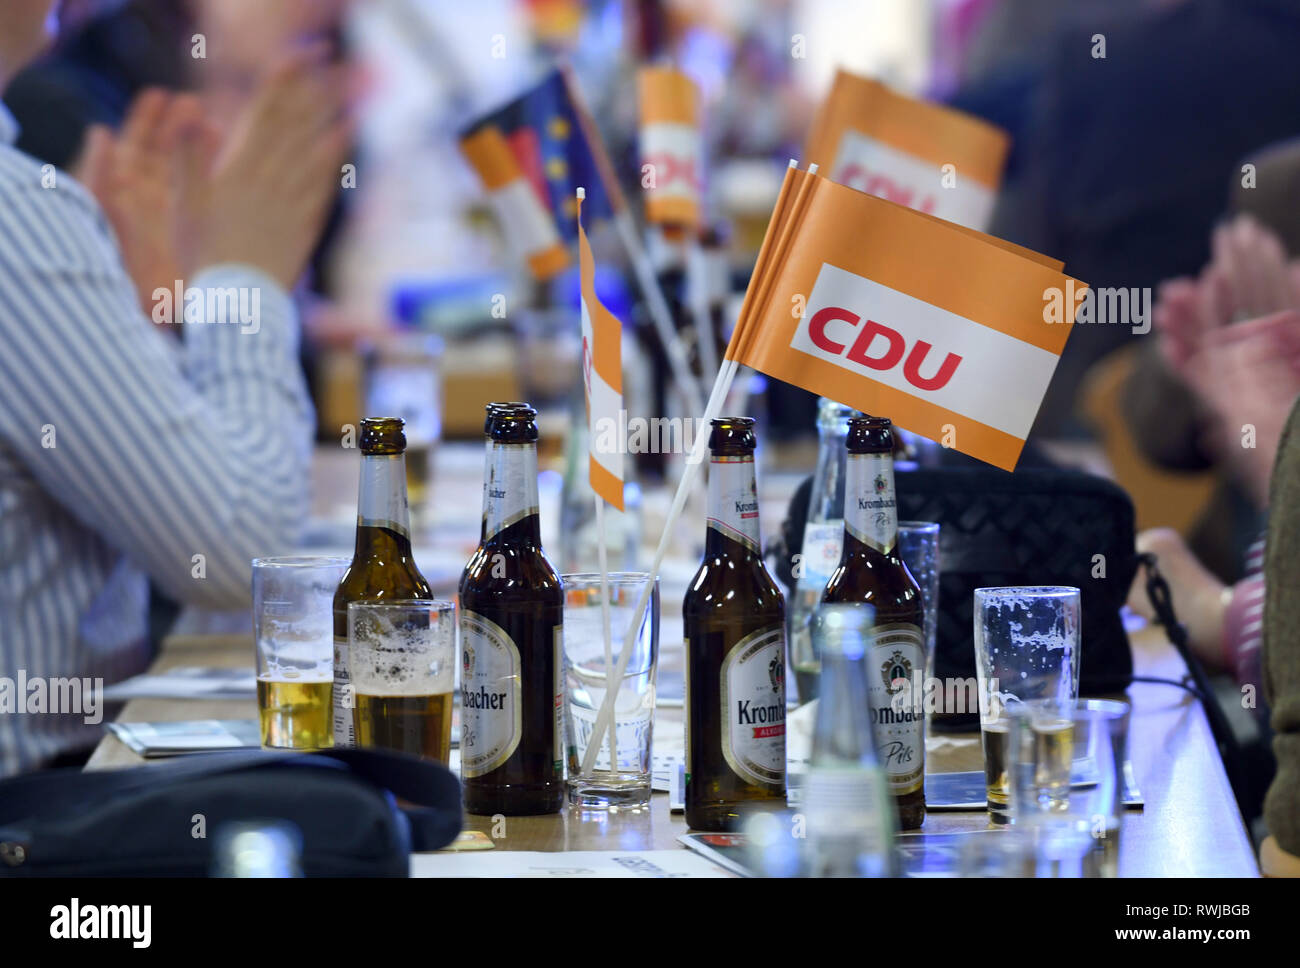 Lennestadt, Germany. 06th Mar, 2019. CDU flags are on the table at the CDU North Rhine-Westphalia's Political Ash Wednesday in the Schützenhalle. Credit: Ina Fassbender/dpa/Alamy Live News - Stock Image